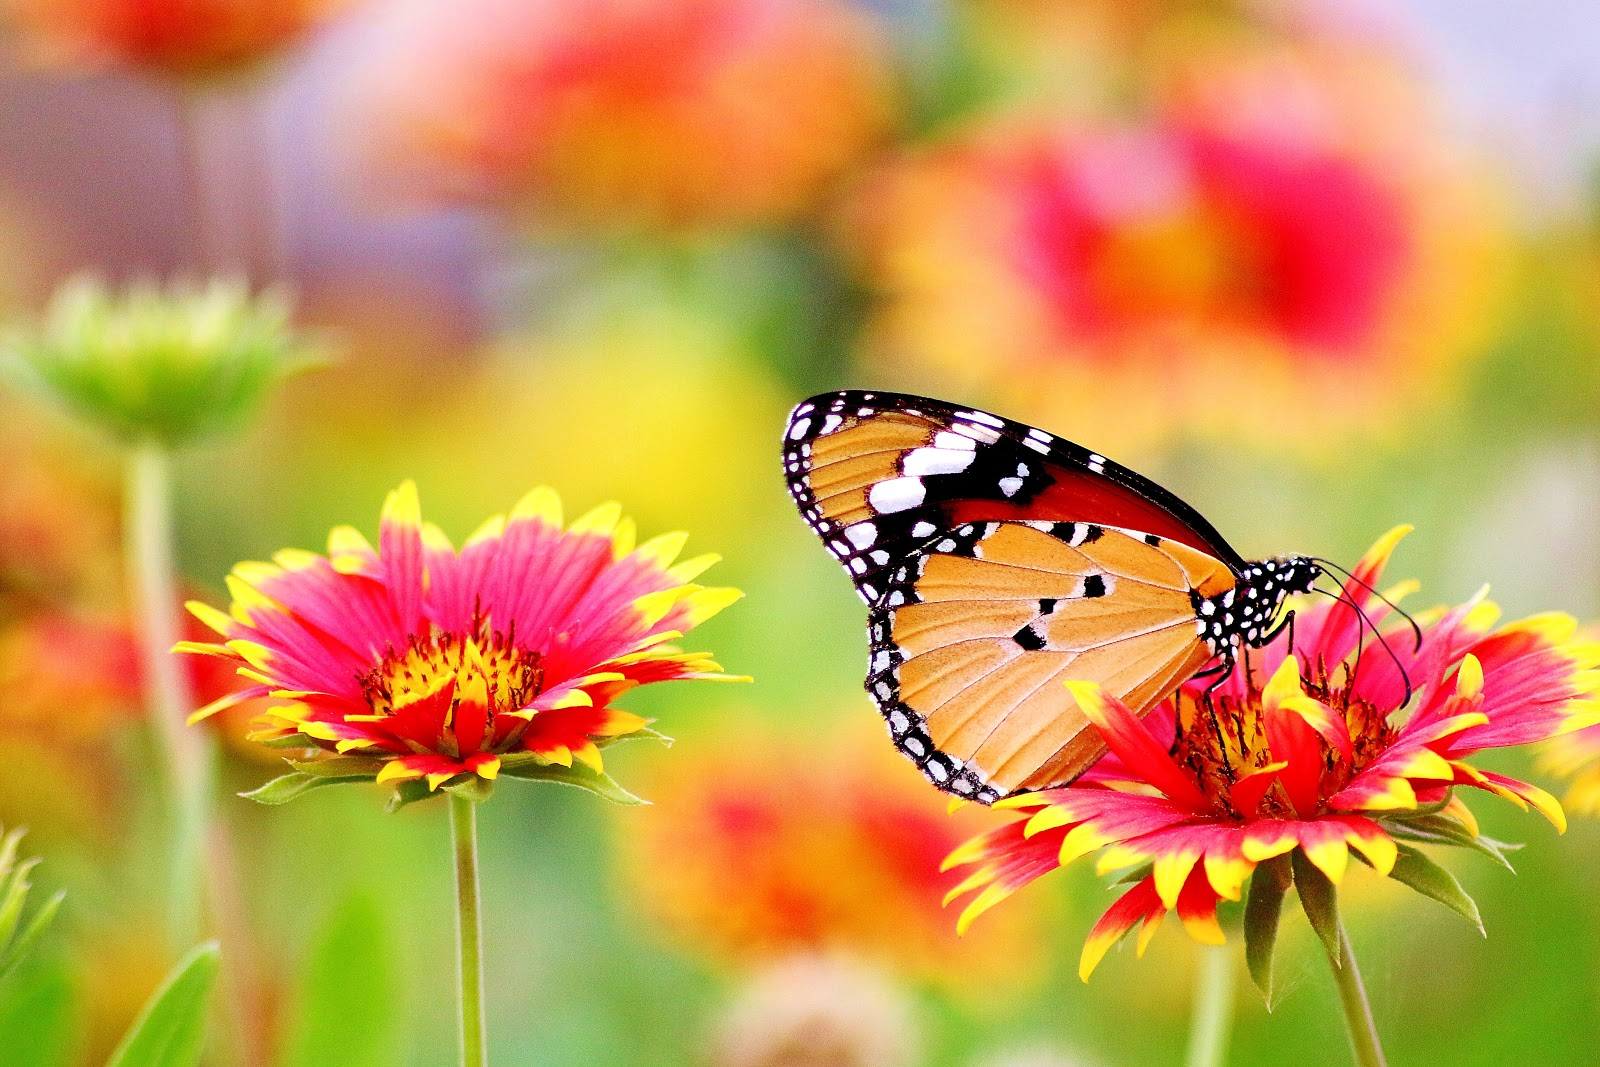 bloom-blooming-blossom-blur-butterfly-pictures